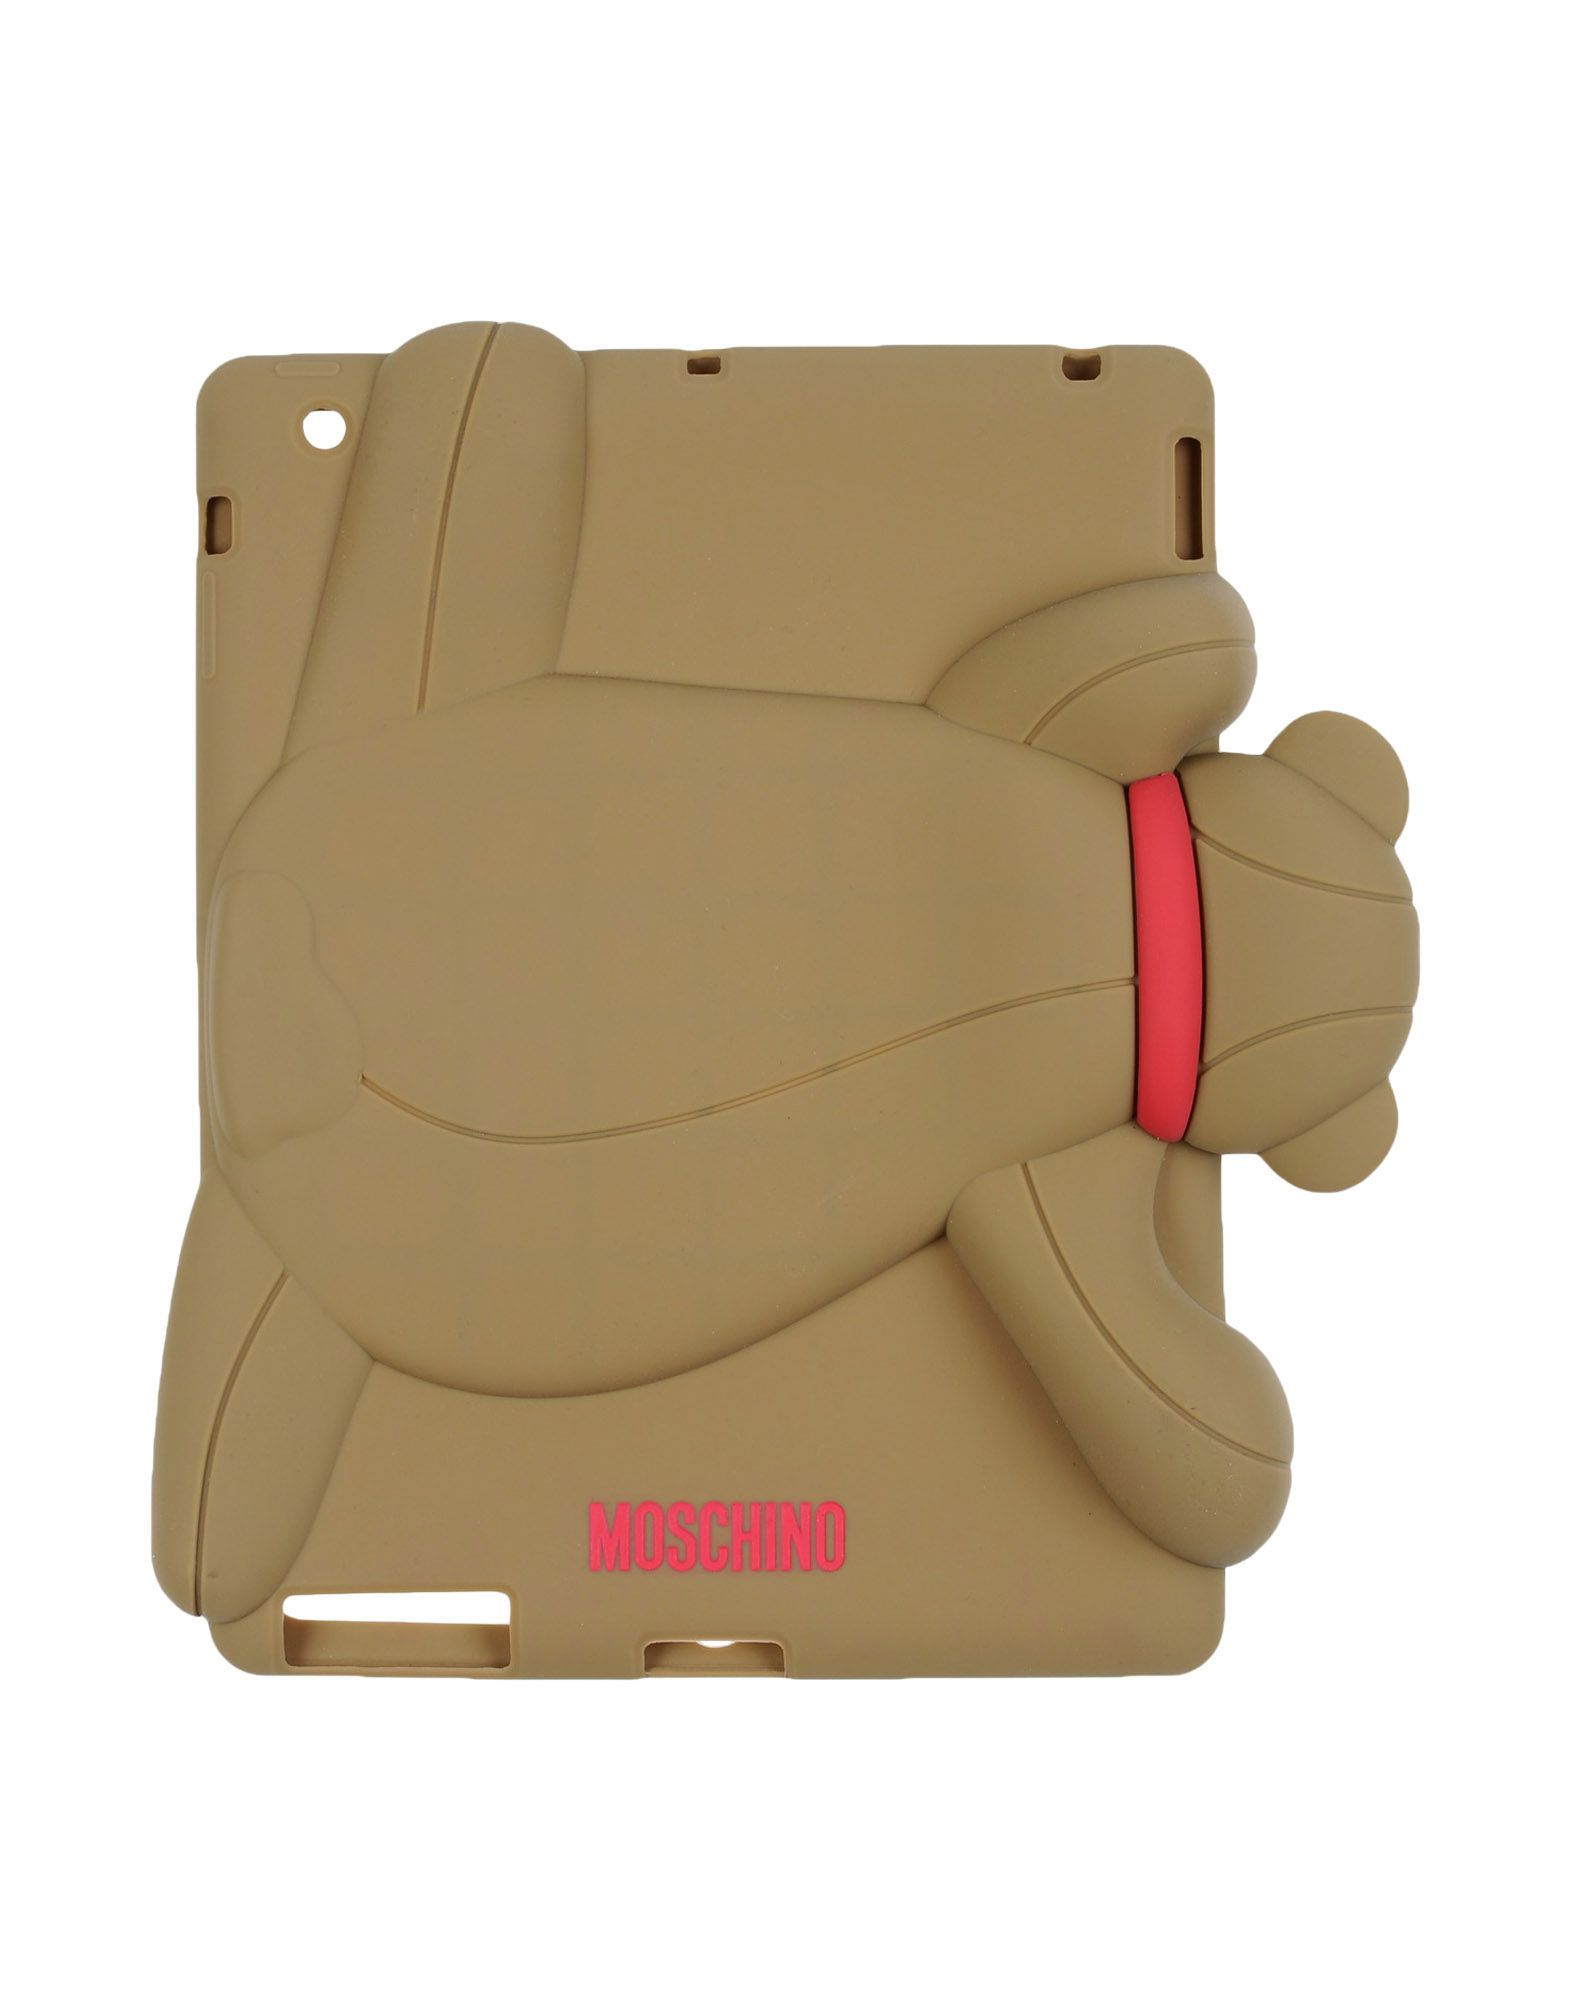 the best attitude 811d0 c8a9b MOSCHINO iPad 2 Cover - Accessories | YOOX.COM